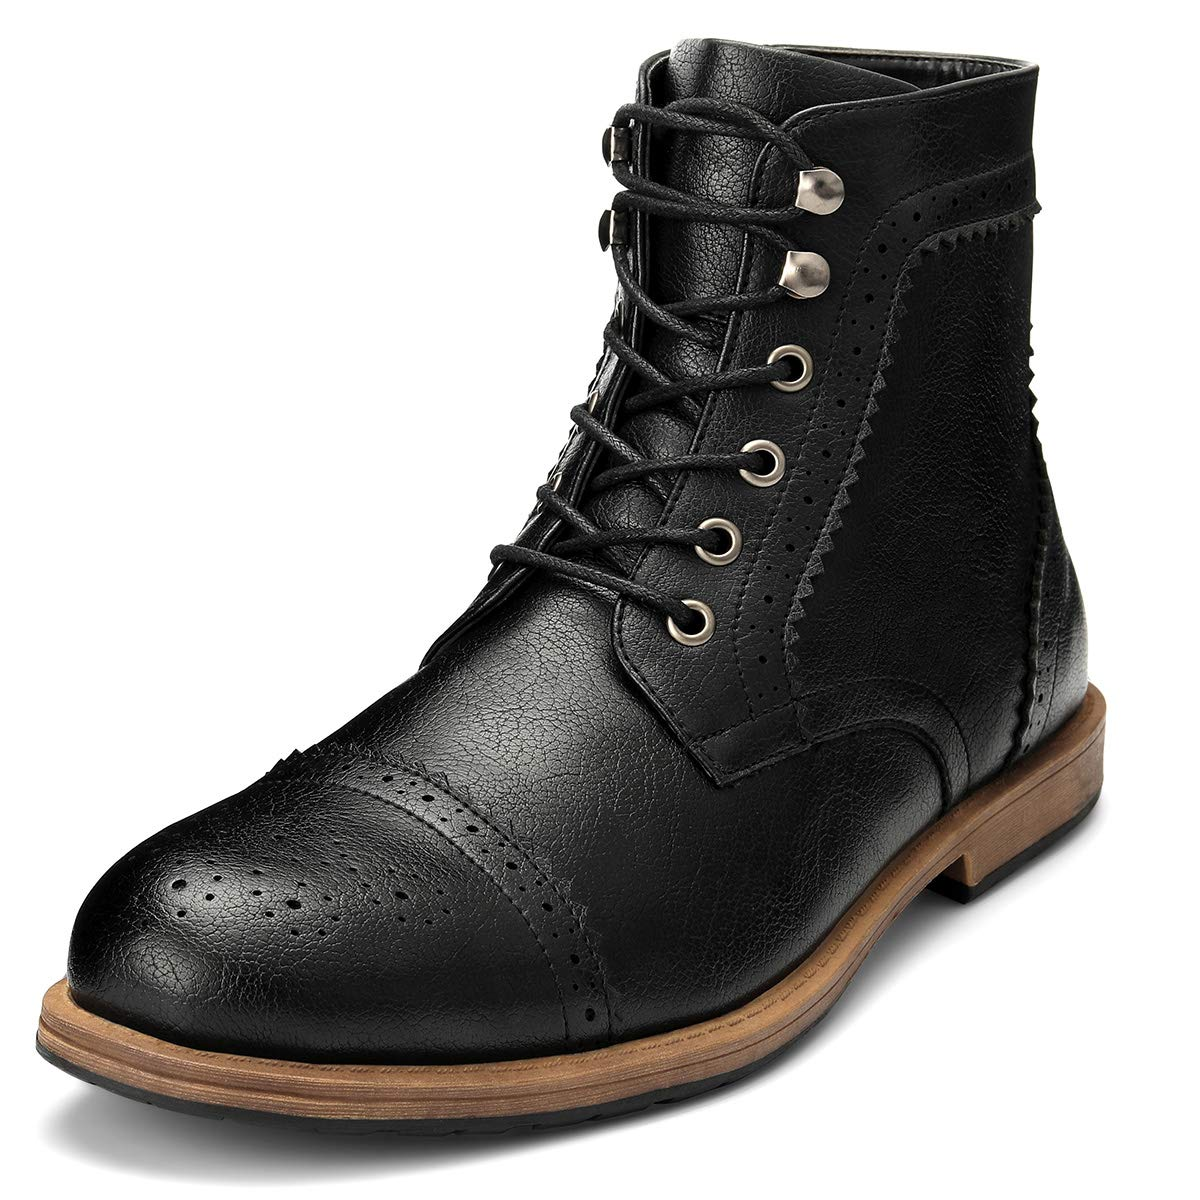 Men's Brogue Boots Ankle Oxford - Dress Boot Lace Up Zip Cap Toe Work Motorcycle Riding Hiking Botas Invierno Hombre(Black-8.5 (M) US)